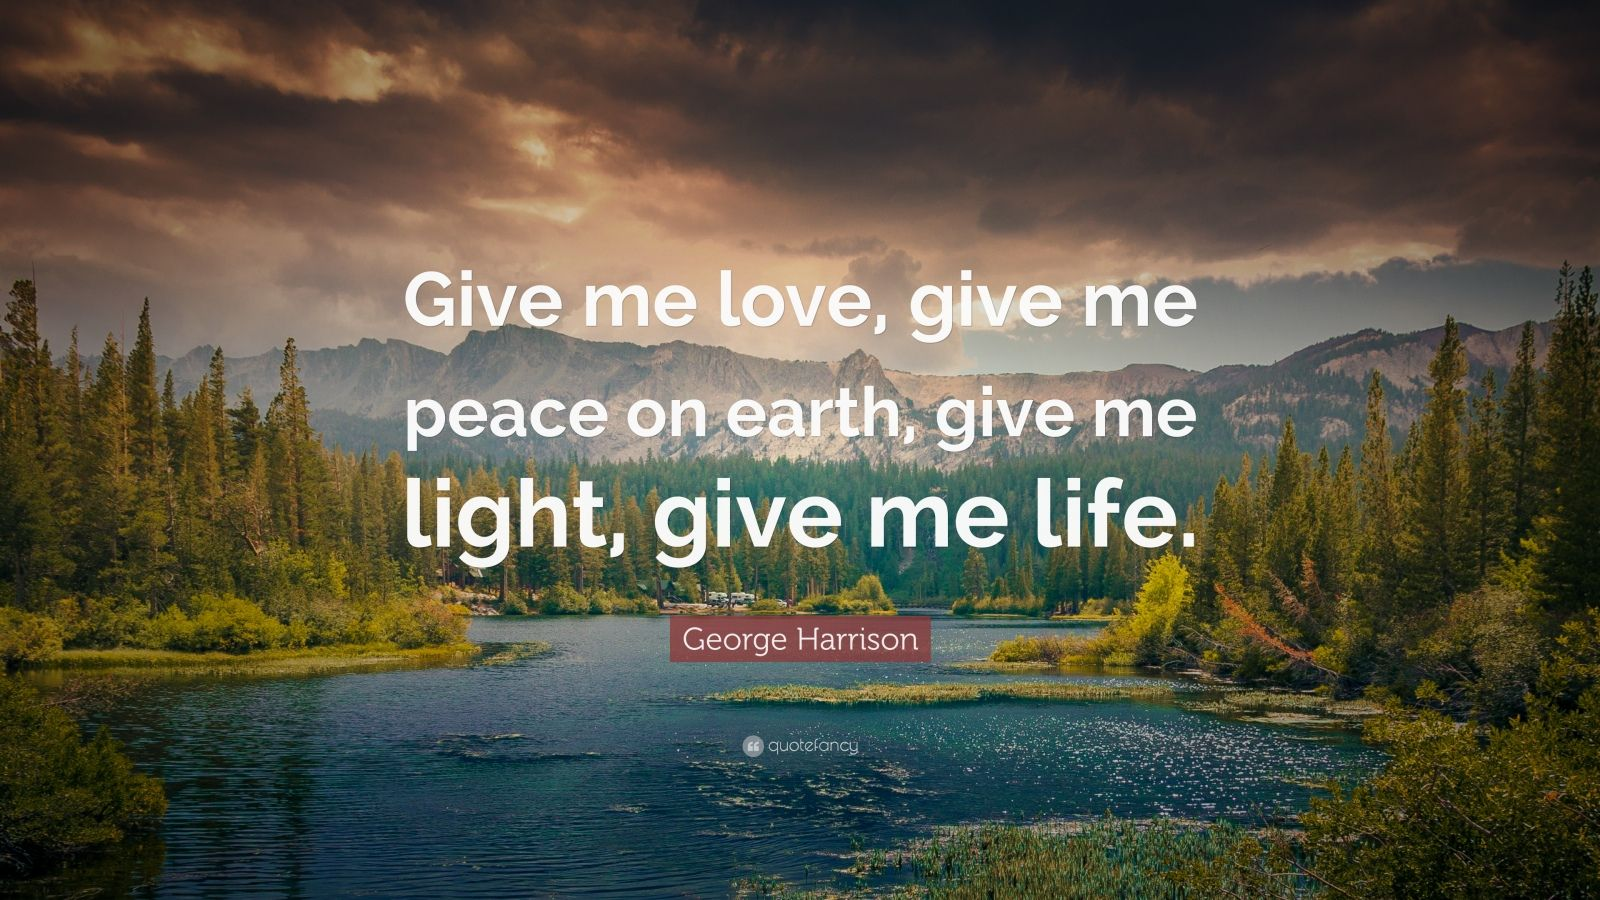 """George Harrison Quote: """"Give me love, give me peace on earth, give me light, give me life."""""""